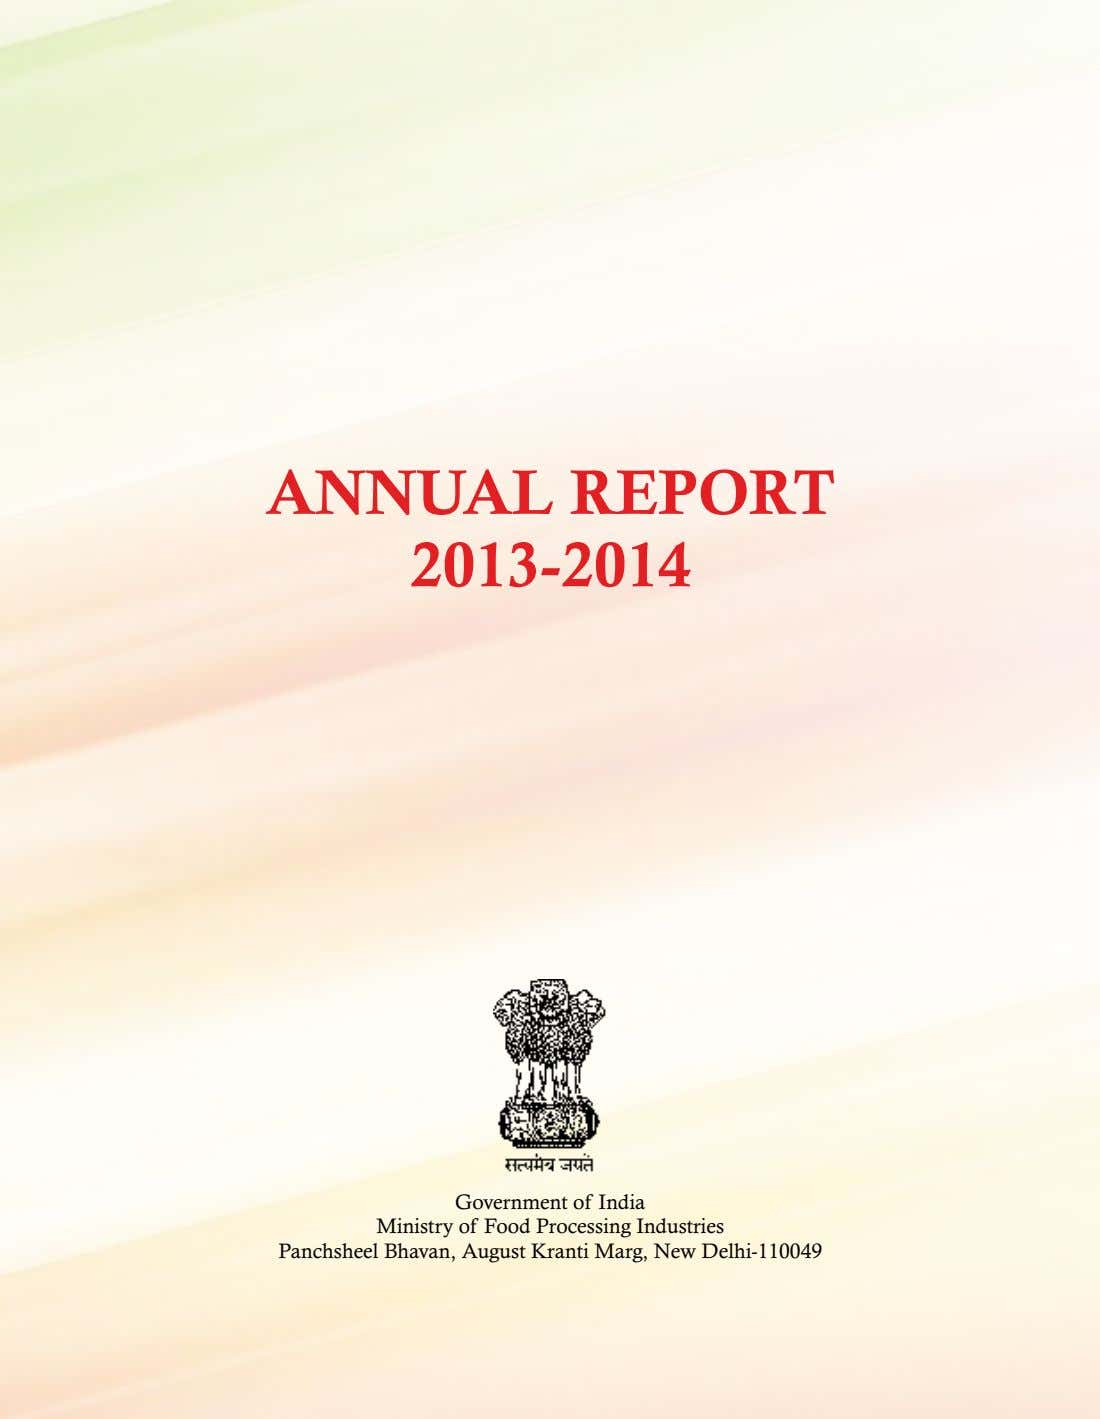 ANNUAL REPORT 2013-2014 Government of India Ministry of Food Processing Industries Panchsheel Bhavan, August Kranti